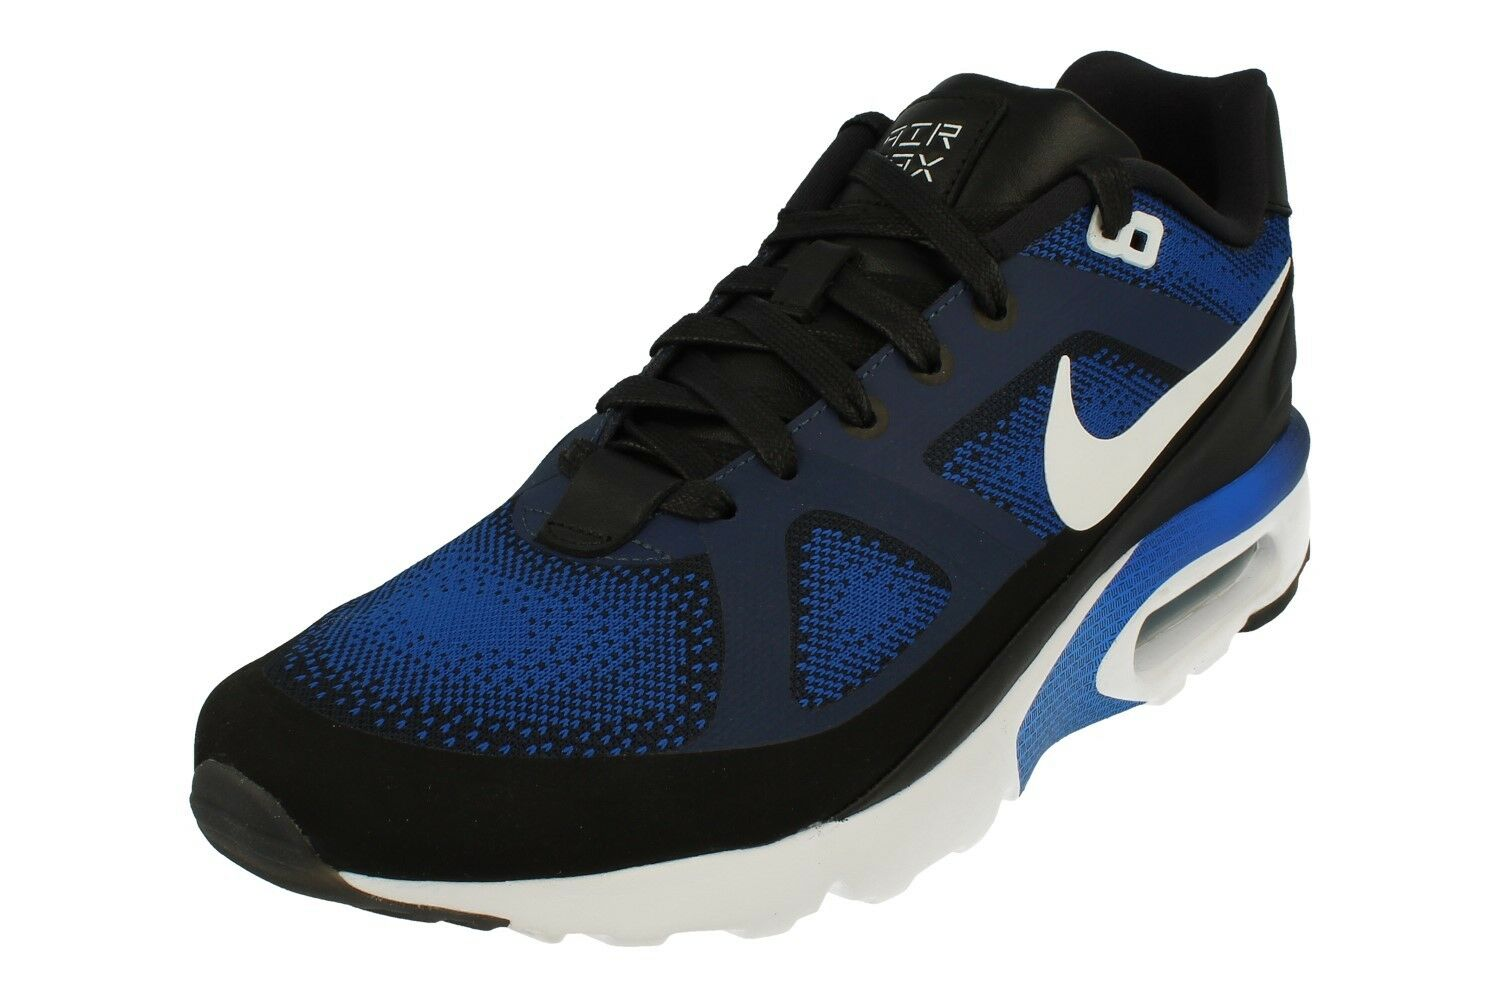 Nike air max ultra mp 848625 mens running zapatos zapatillas 401